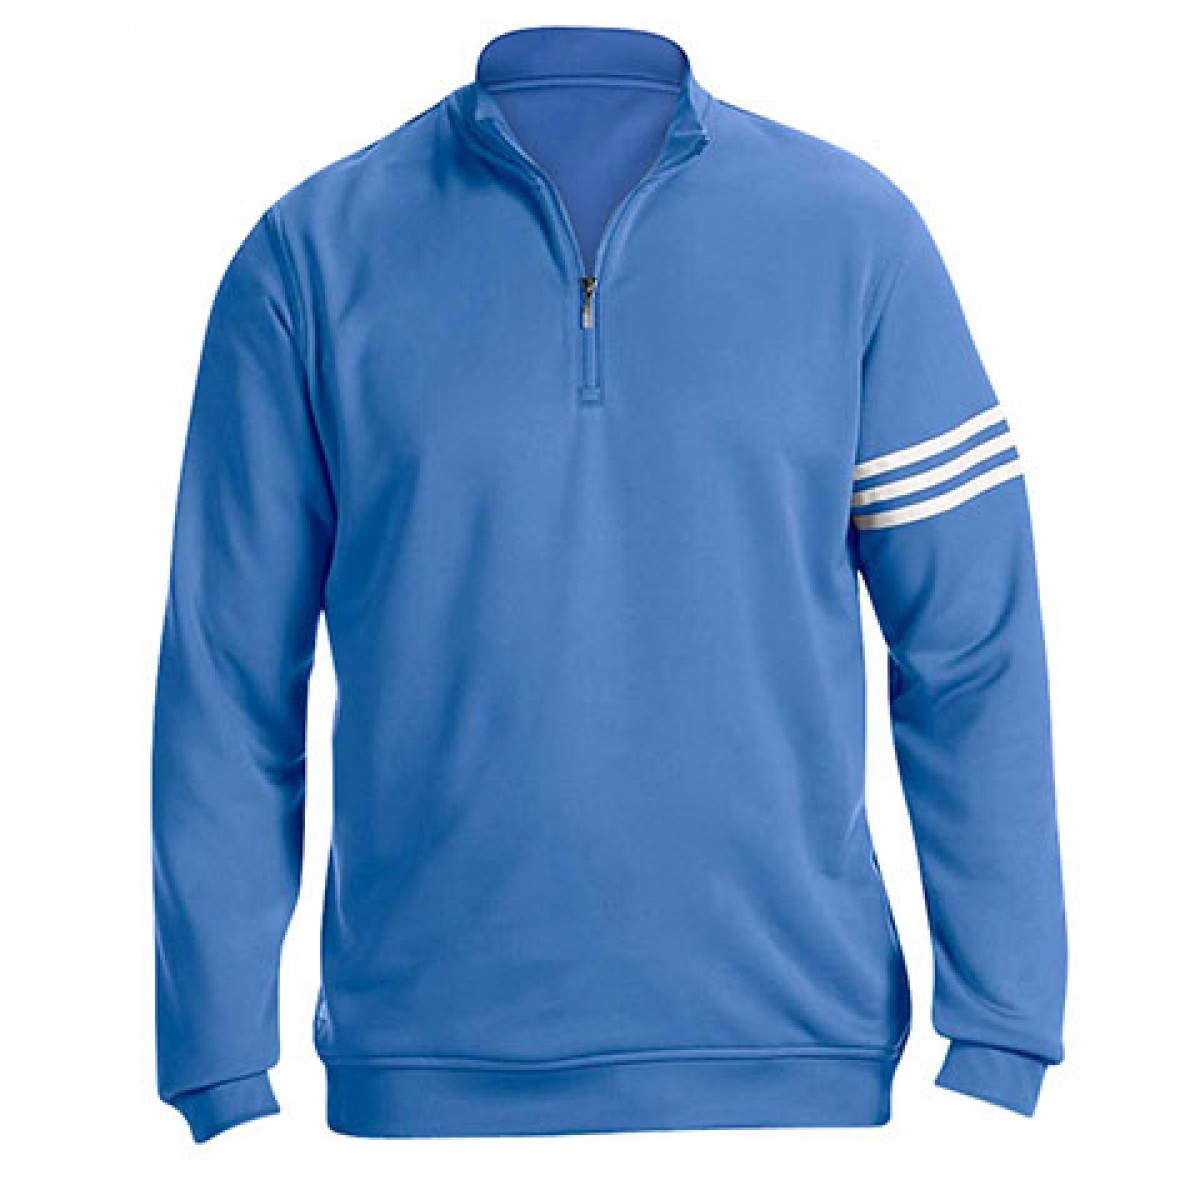 Adidas Golf Men's ClimaLite® 3-Stripes Pullover-Blue-L